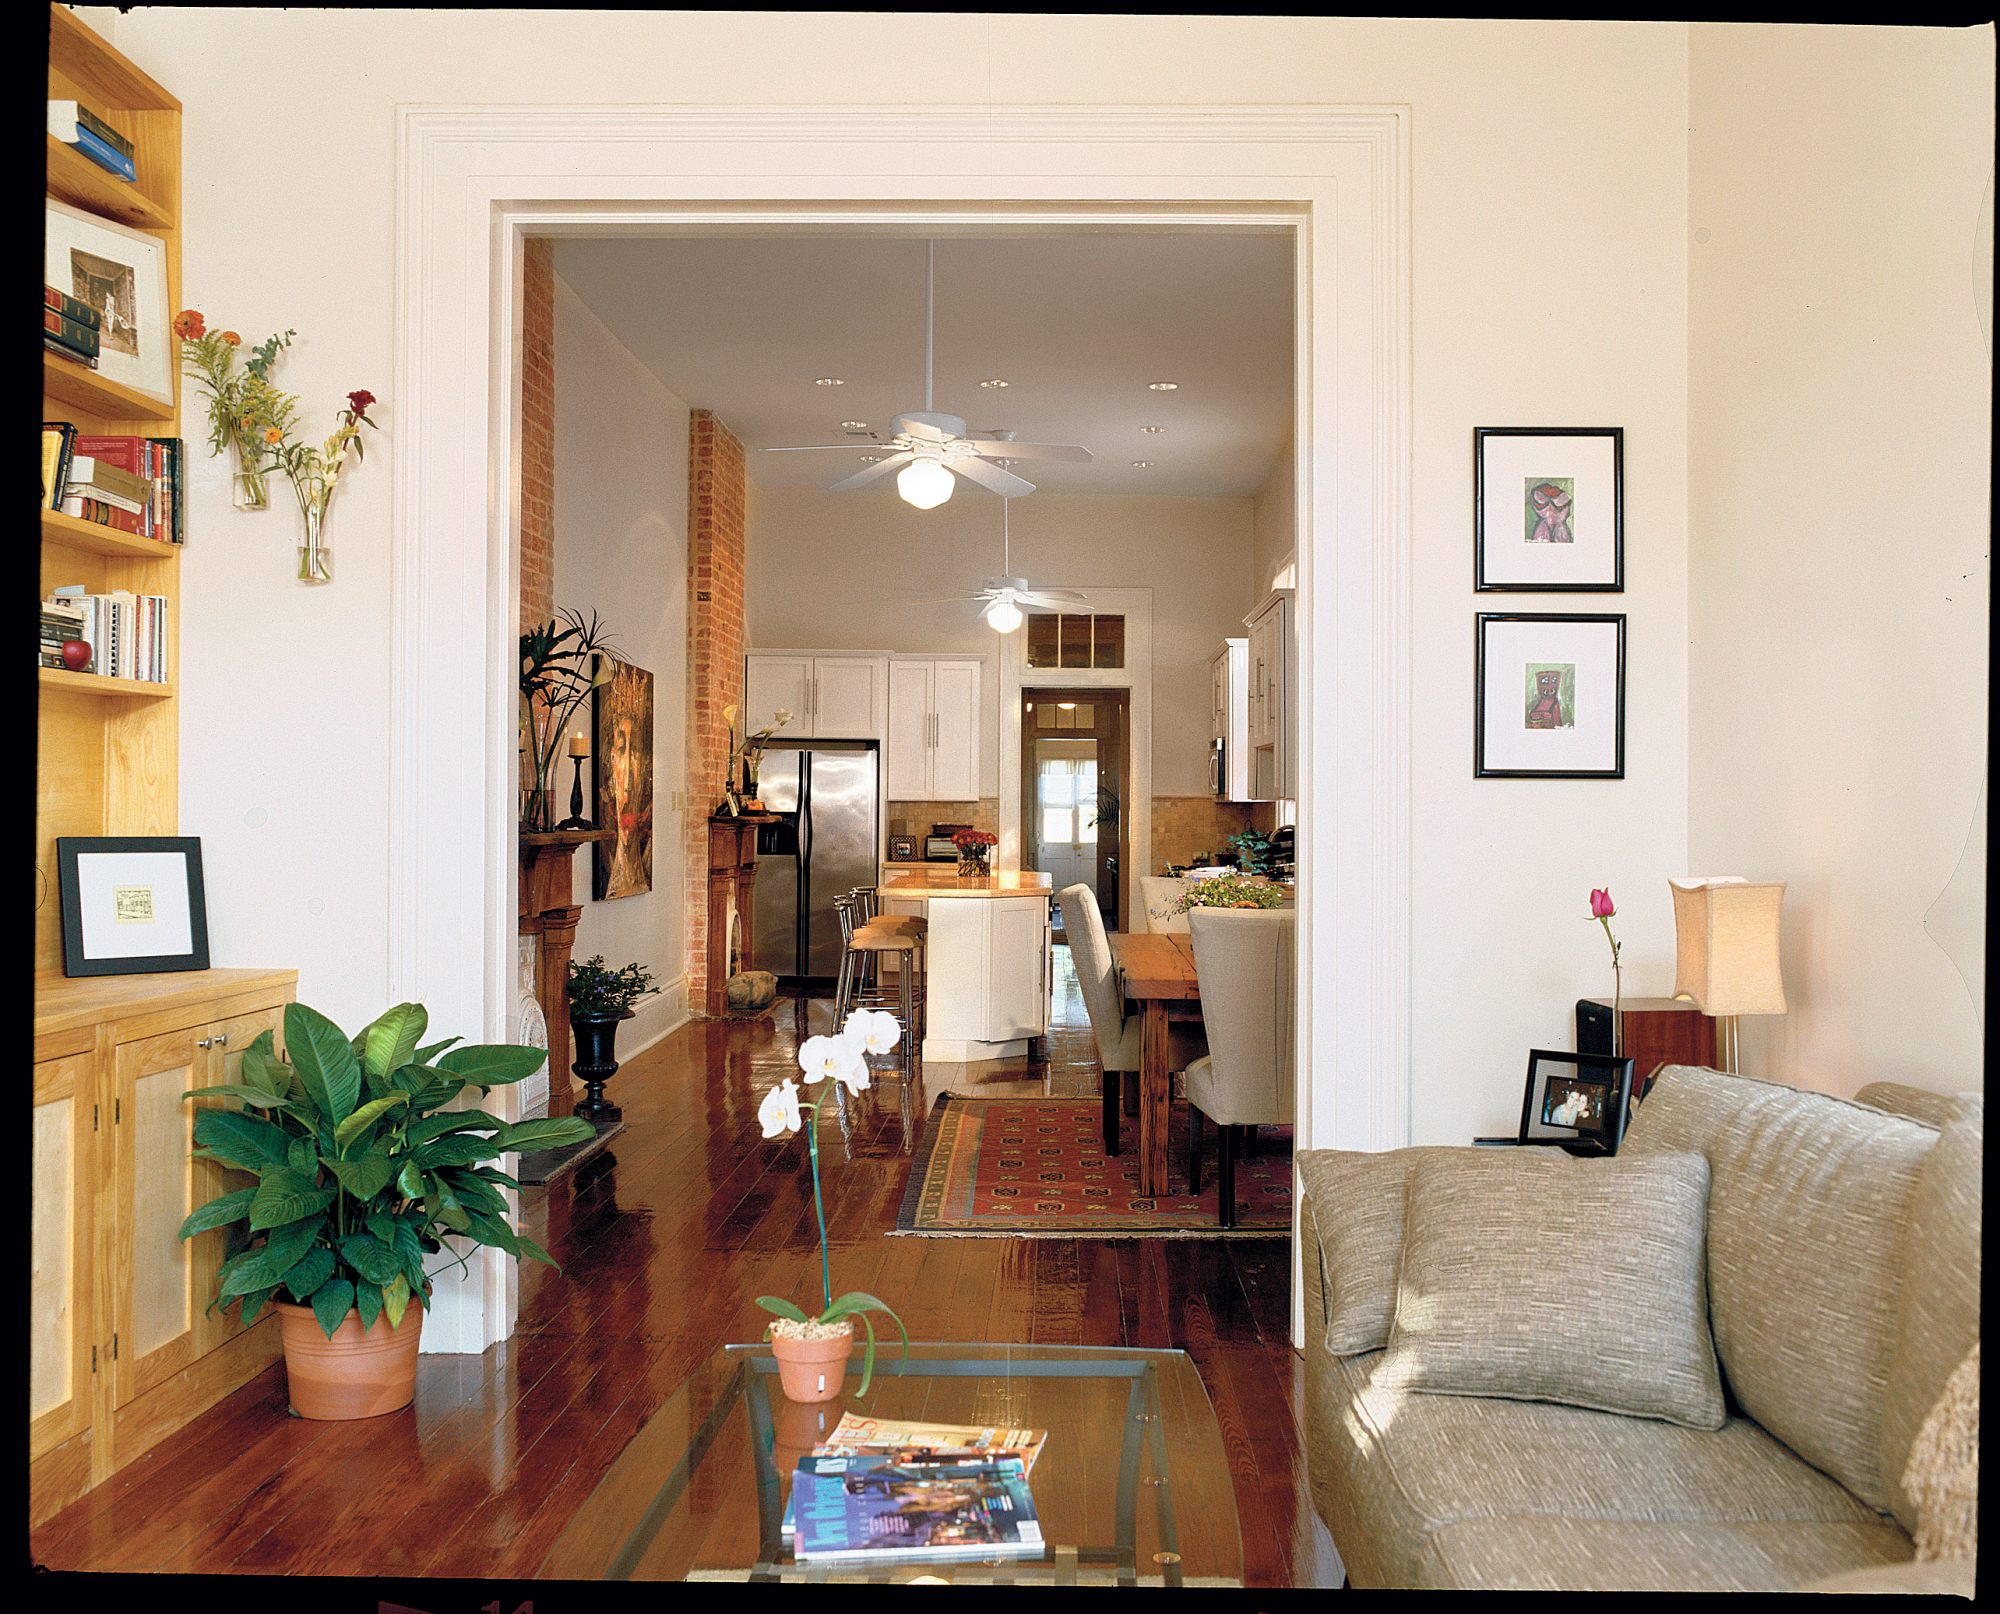 shotgun house interior. The Best Tricks for Small Spaces  Southern Living